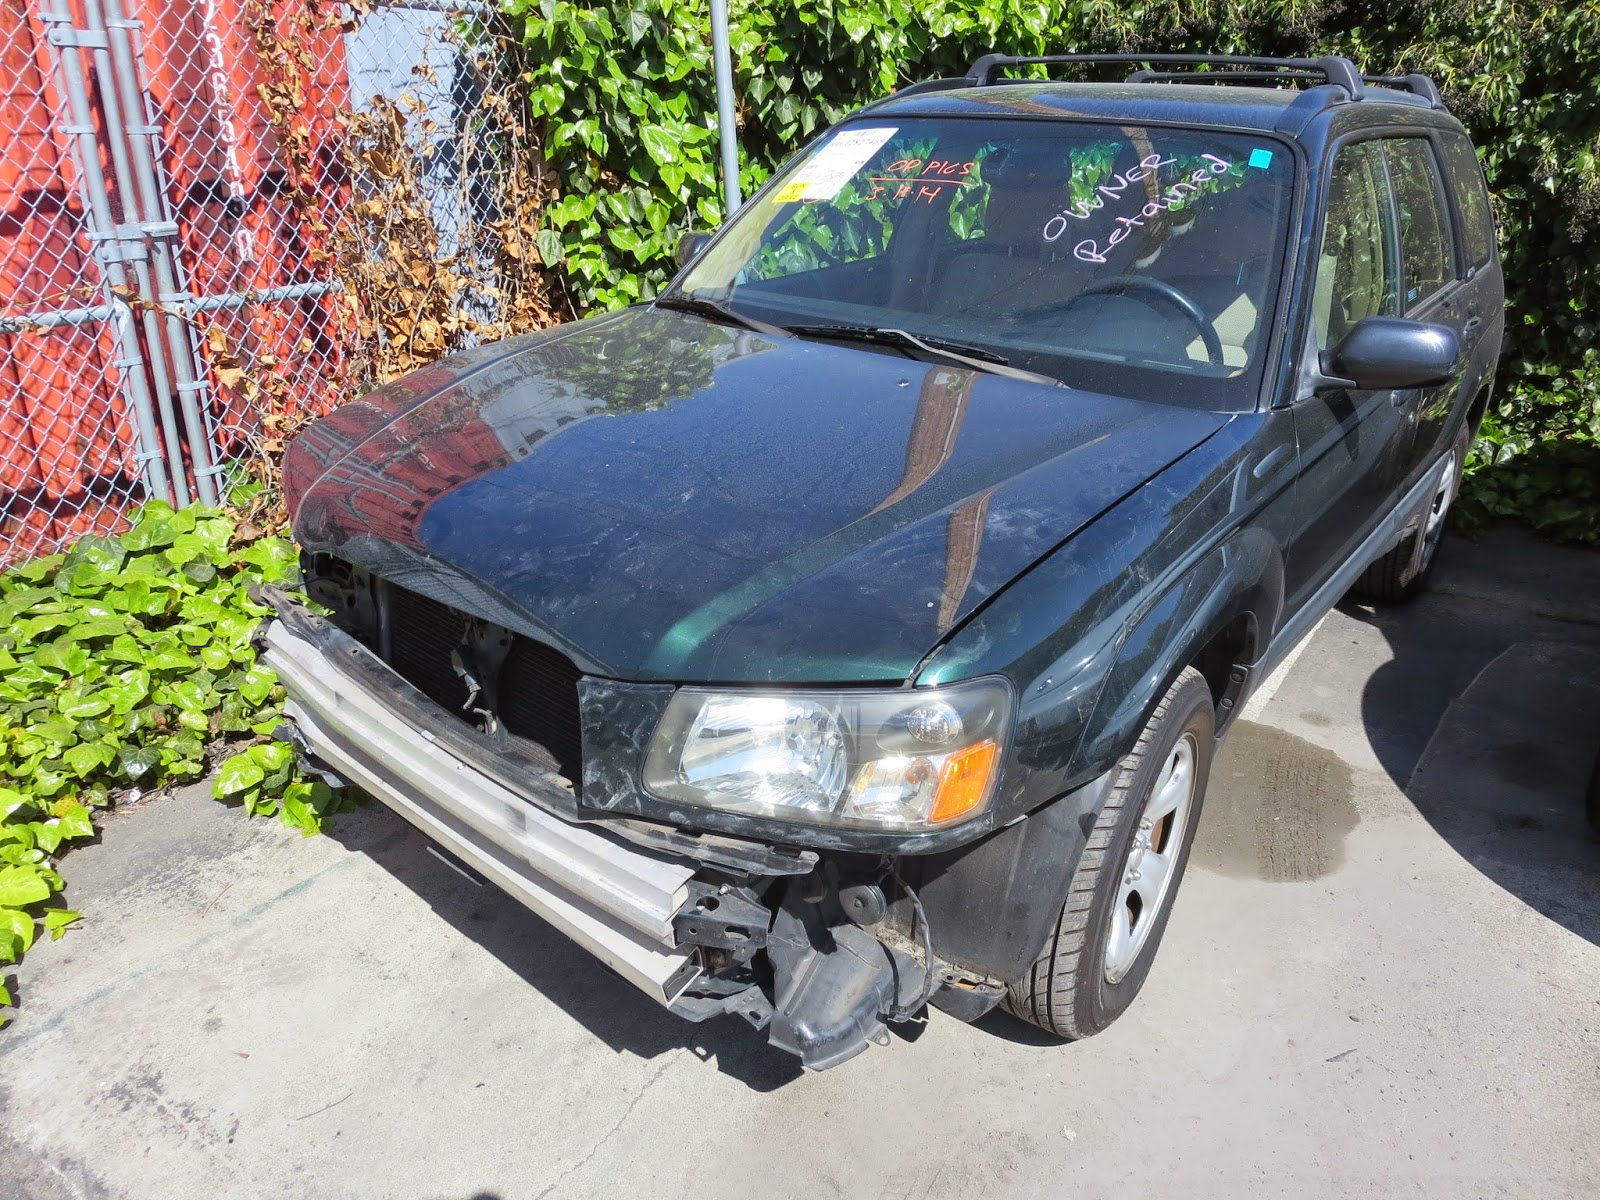 Car before auto body collision repair at Almost Everything Auto Body